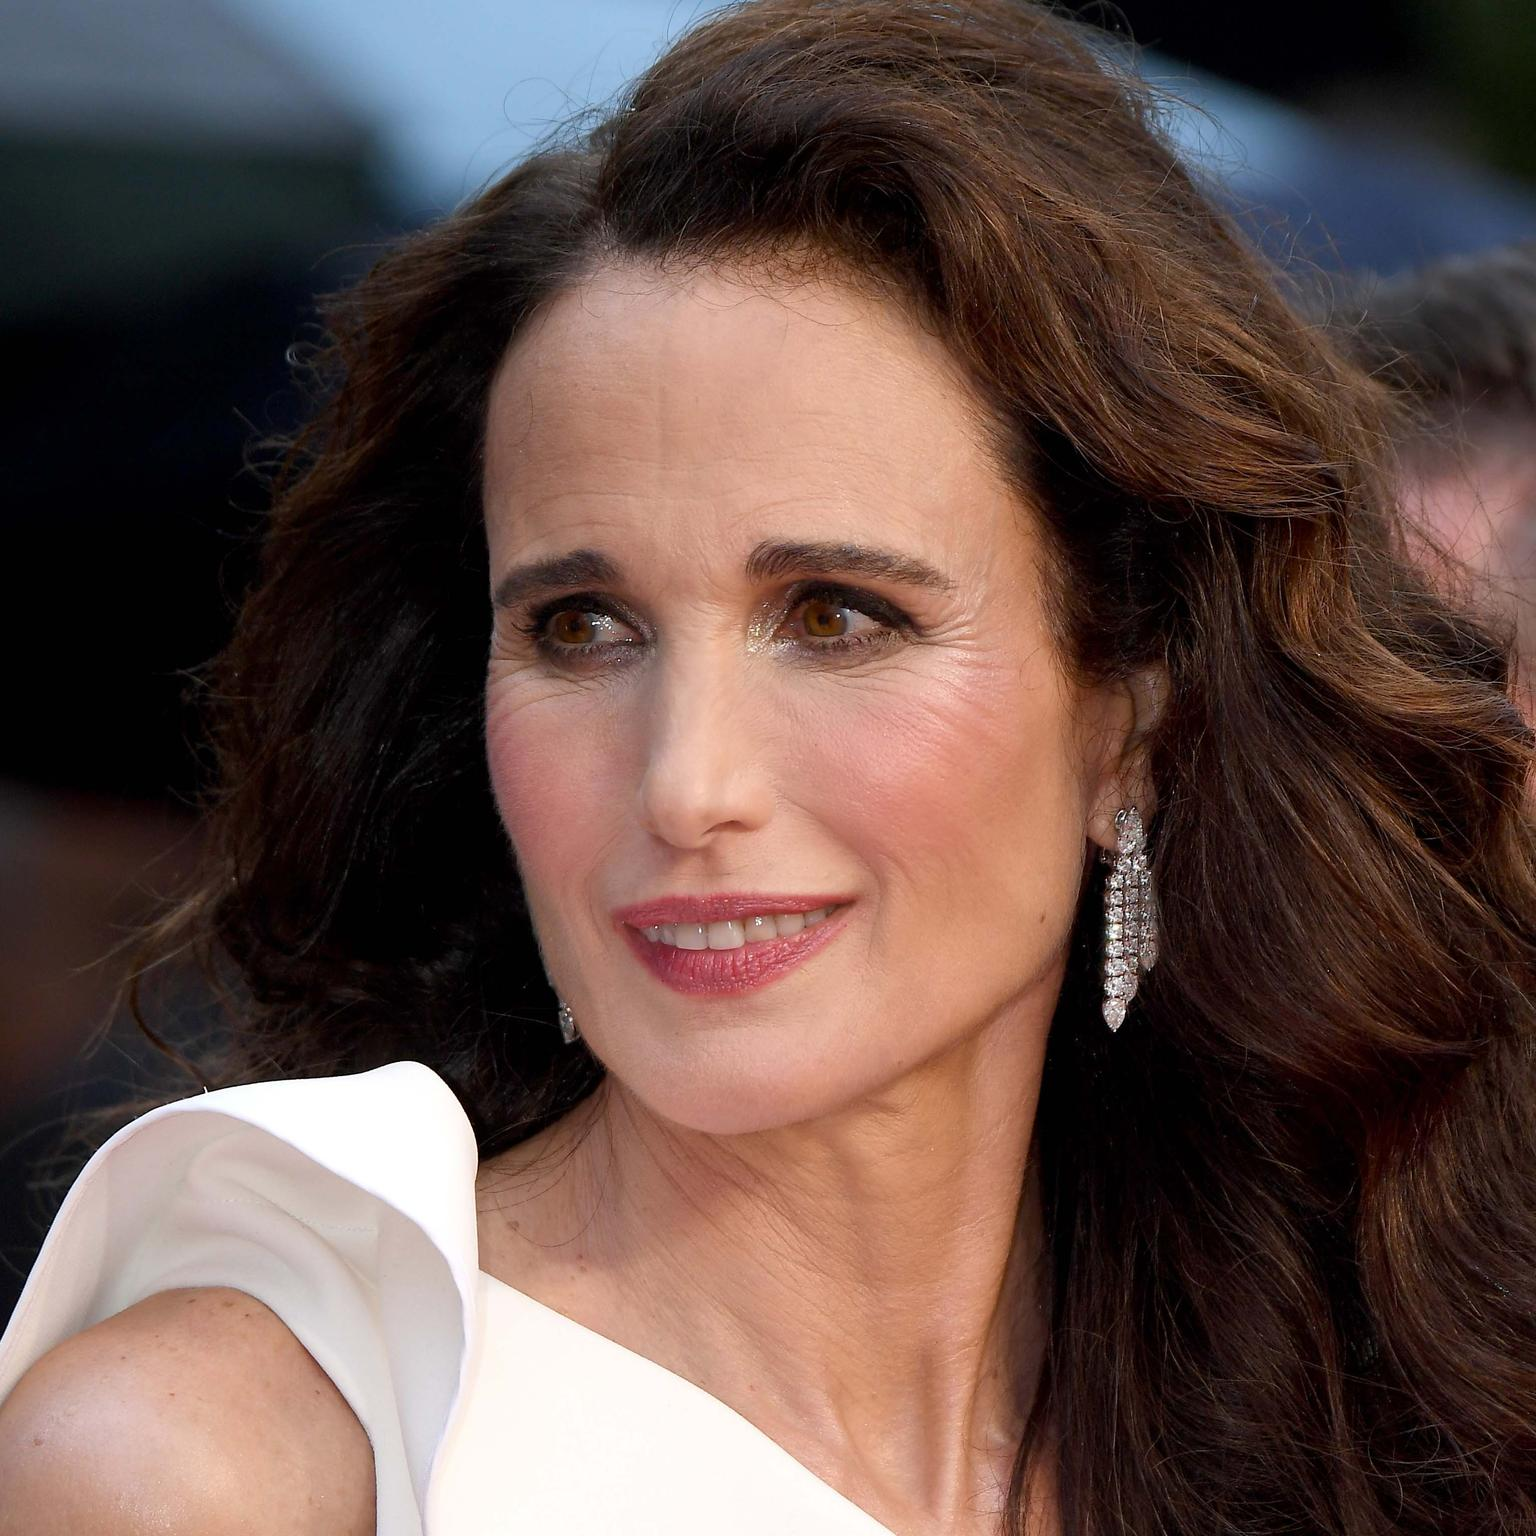 Andie MacDowell in Chopard jewels Cannes Film Festival 2019